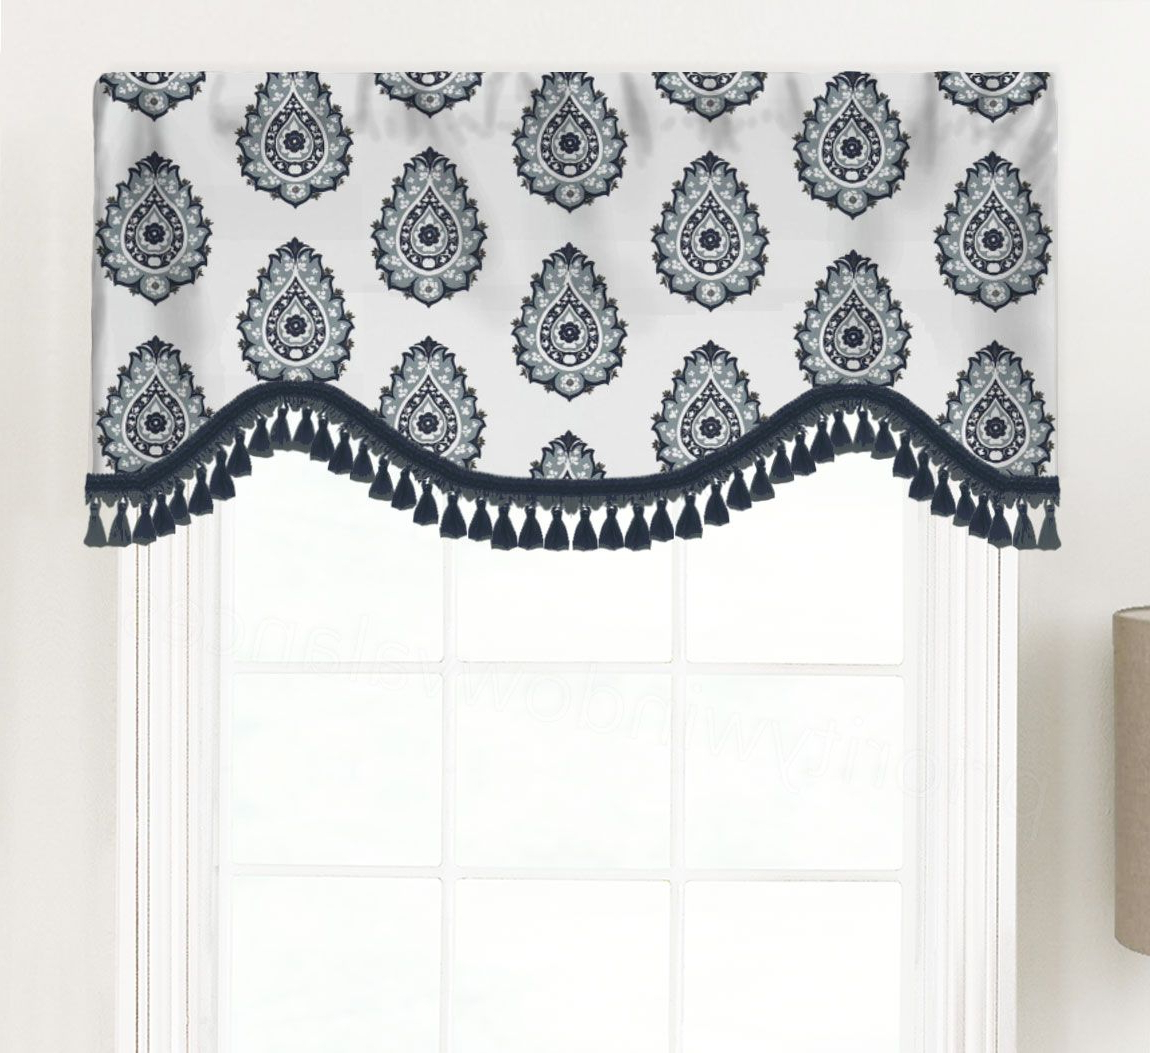 Medallion Window Curtain Valances Pertaining To Current Damask (Floral Medallion Print) Shaped Valance Curtain (Gallery 4 of 20)